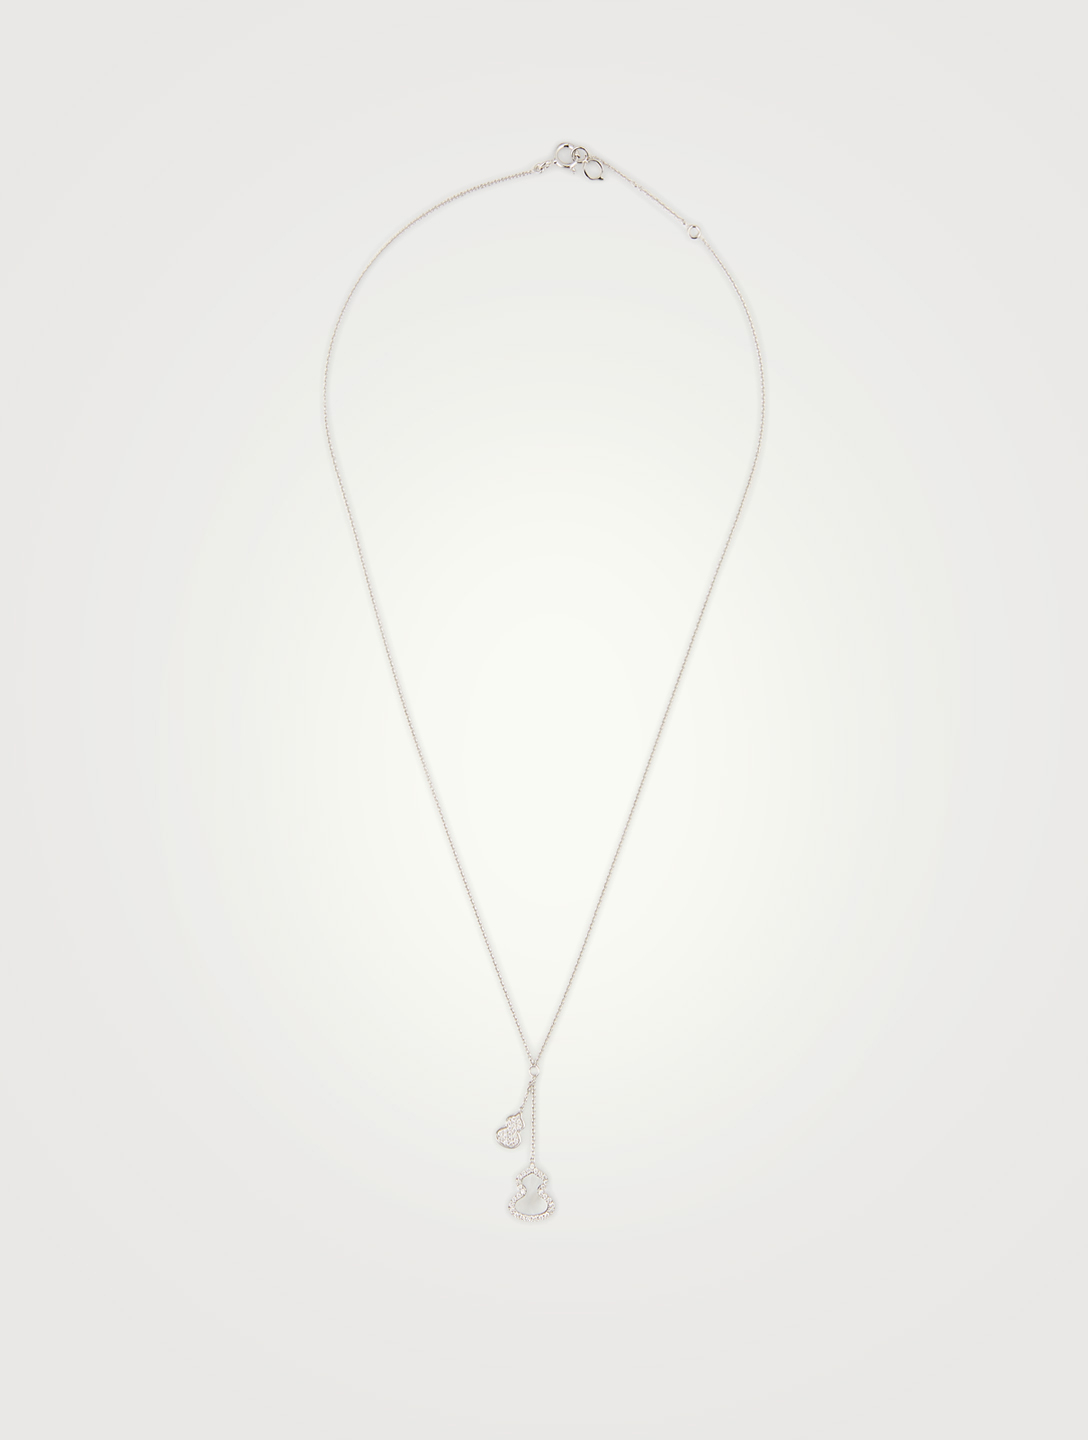 QEELIN Petite Wulu 18K White Gold Necklace With Diamonds And Mother-Of-Pearl Women's Metallic